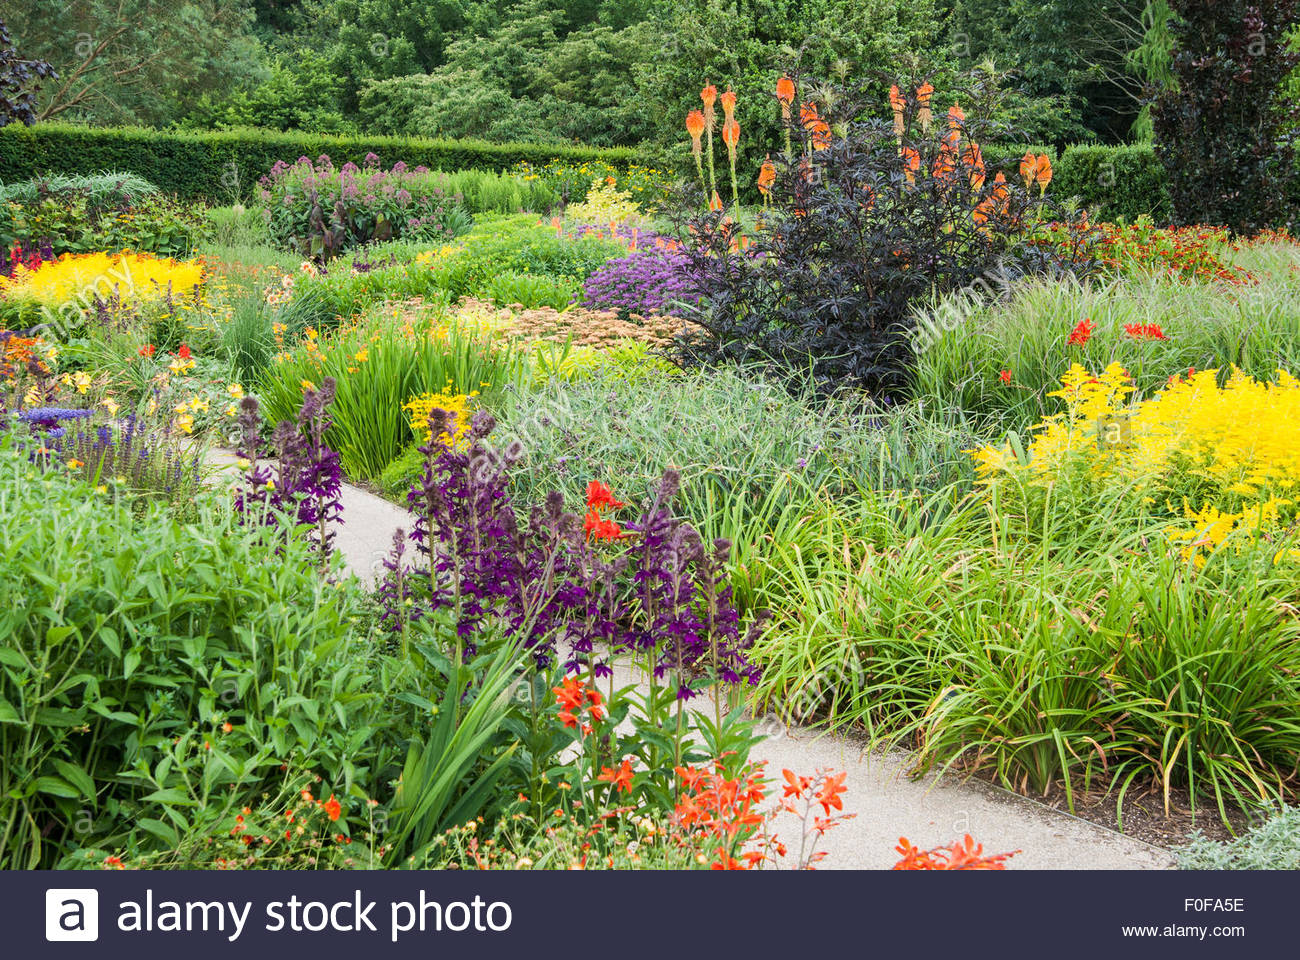 the square garden at rhs rosemoor is full of late summer colour stock photo 86389114 alamy. Black Bedroom Furniture Sets. Home Design Ideas